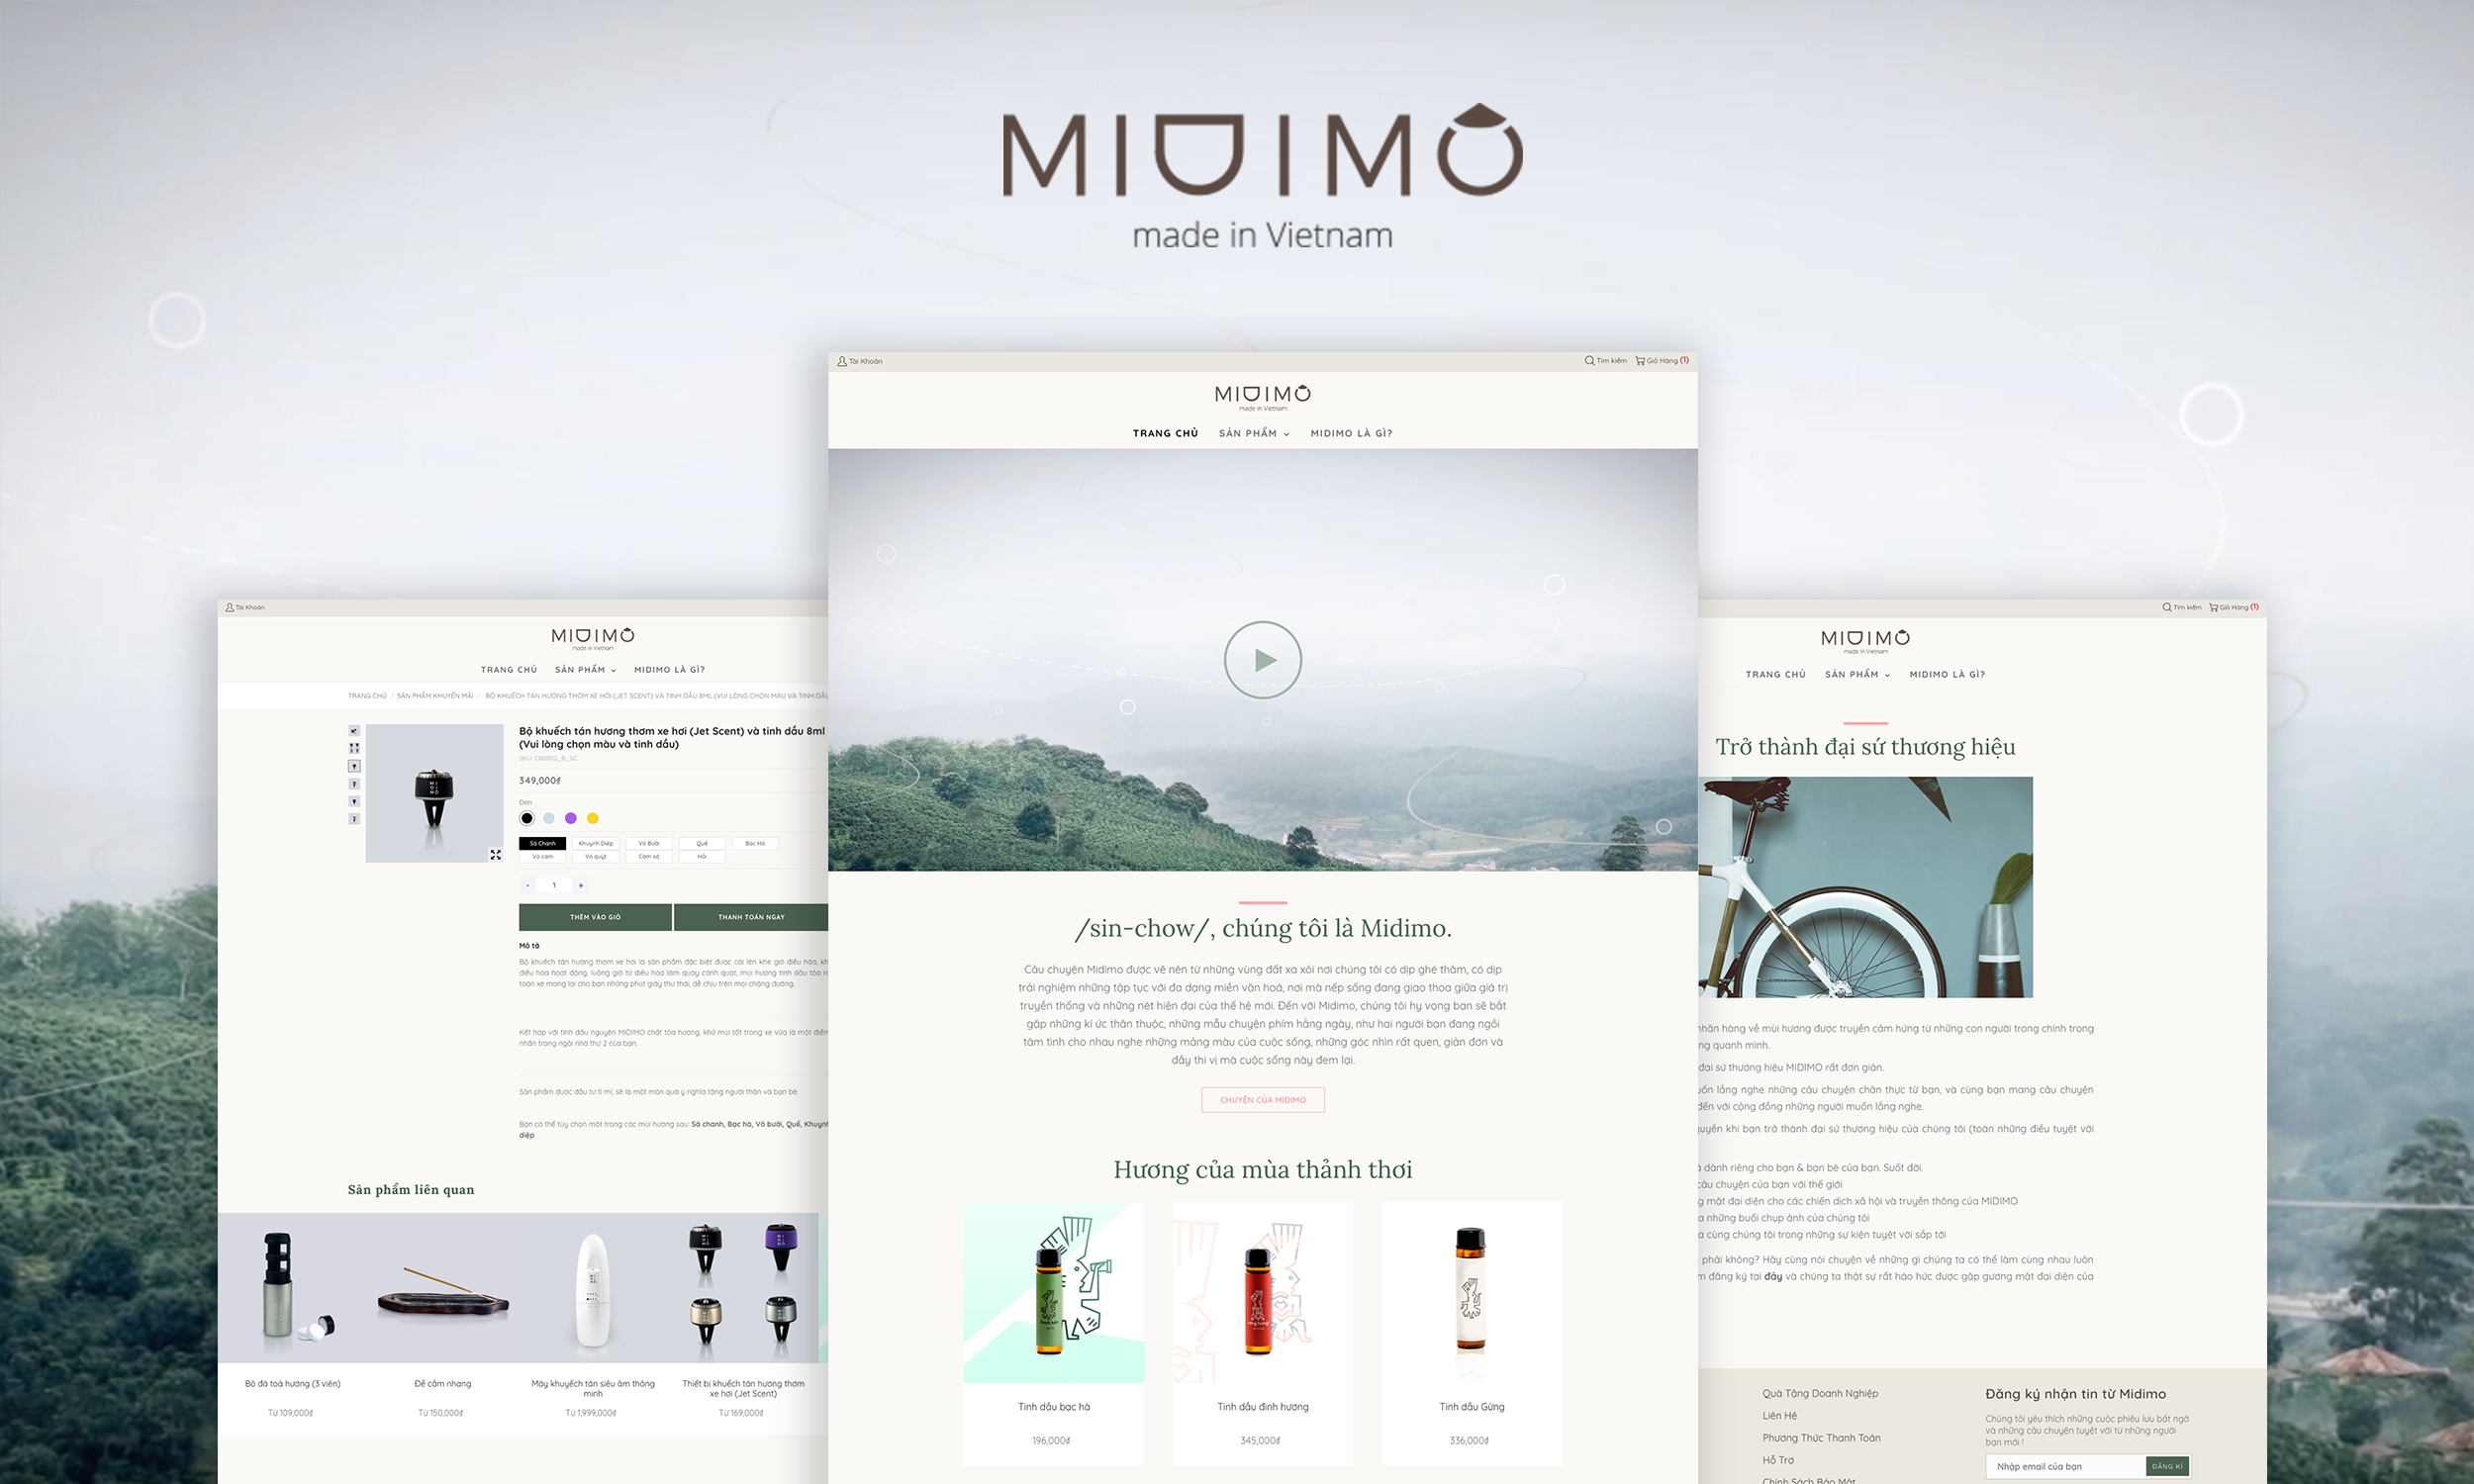 midimo_website.jpg